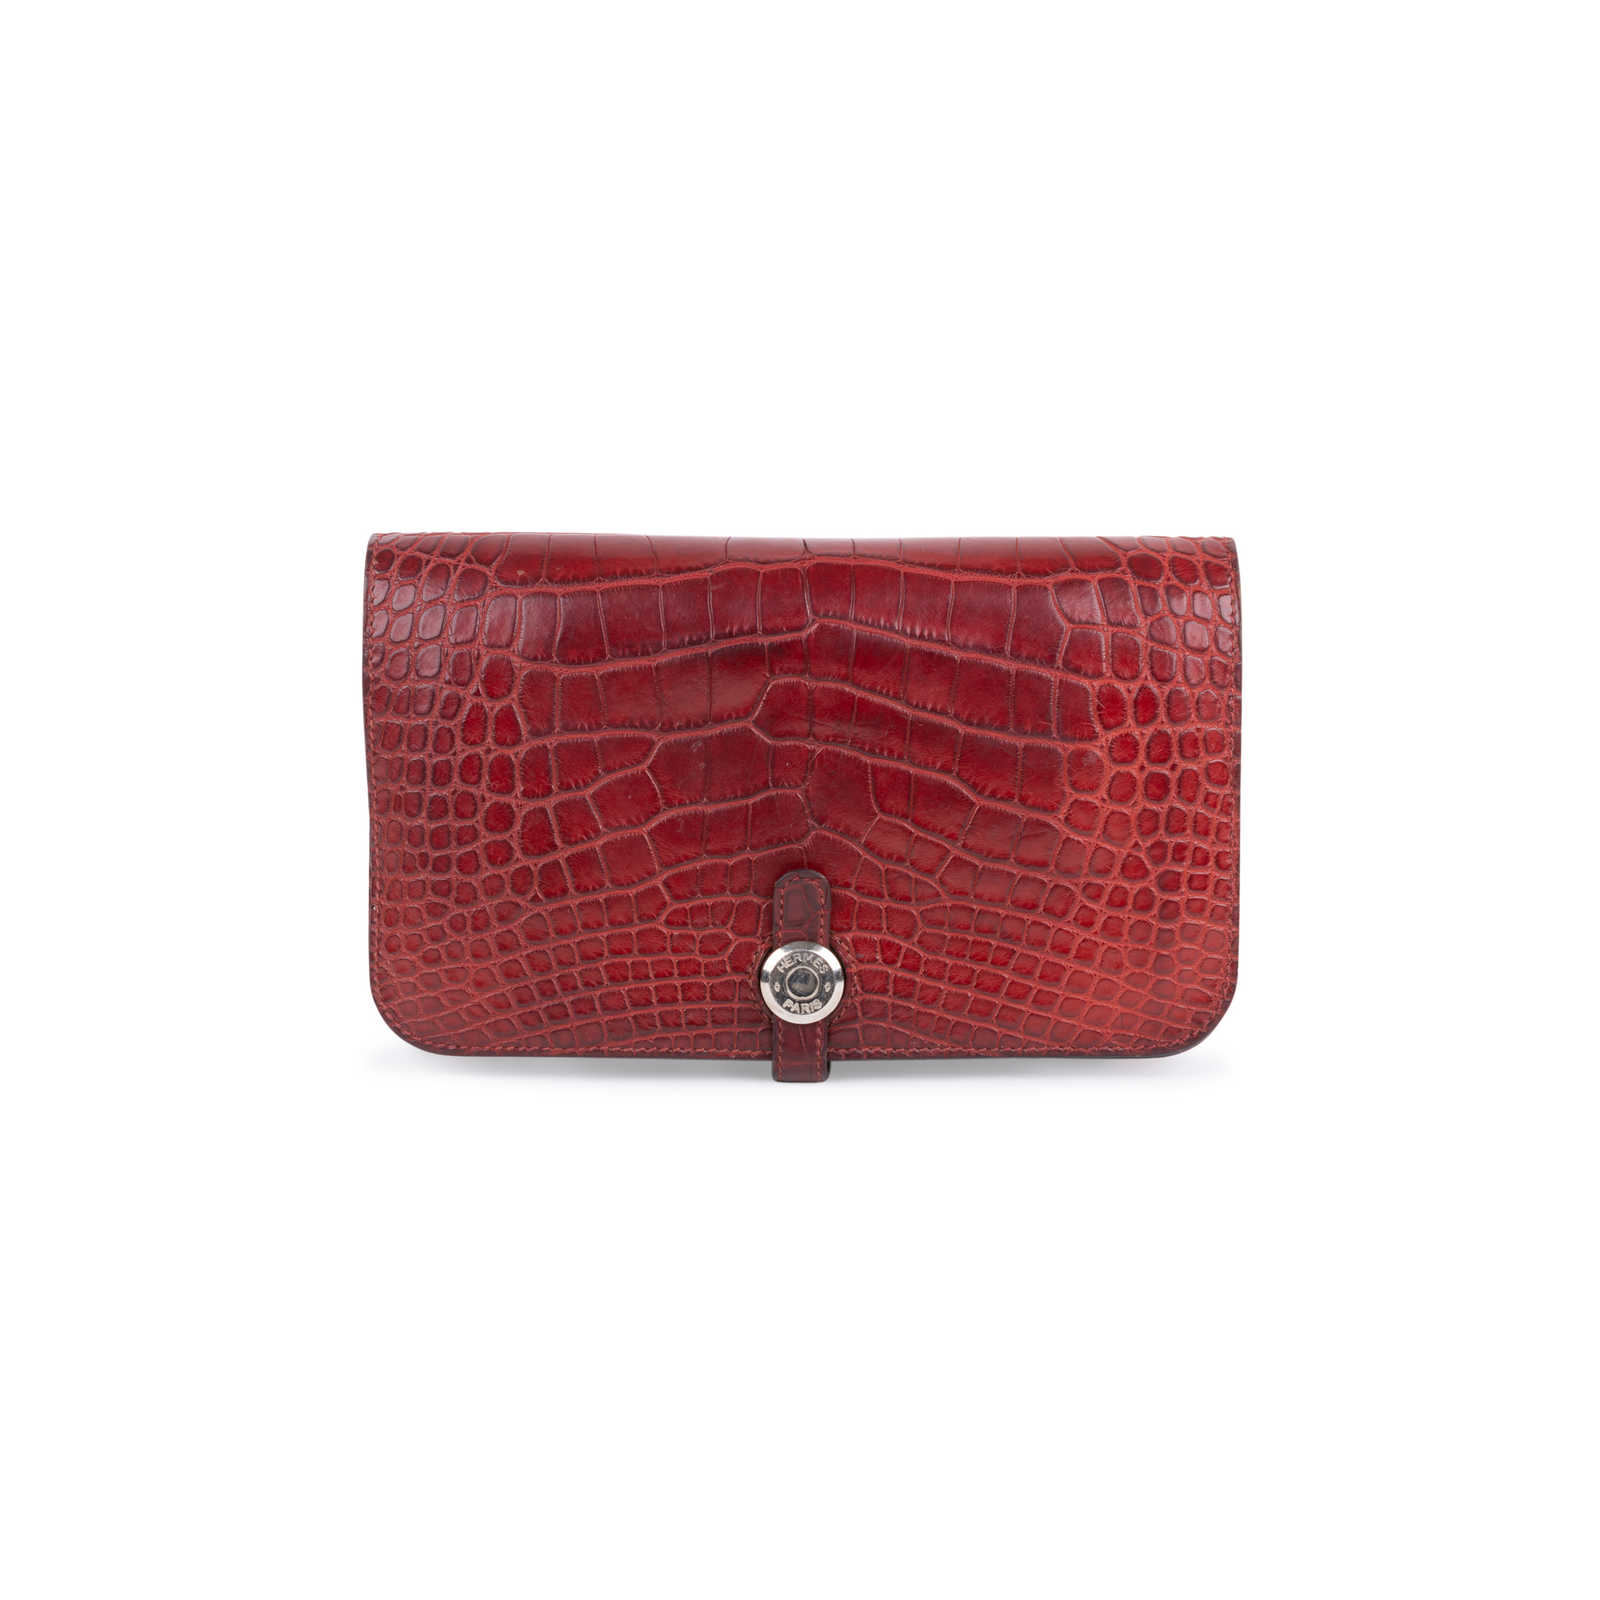 760b1de52f79 Authentic Second Hand Hermès Rouge H Alligator Dogon Wallet (PSS-097-00125)  ...